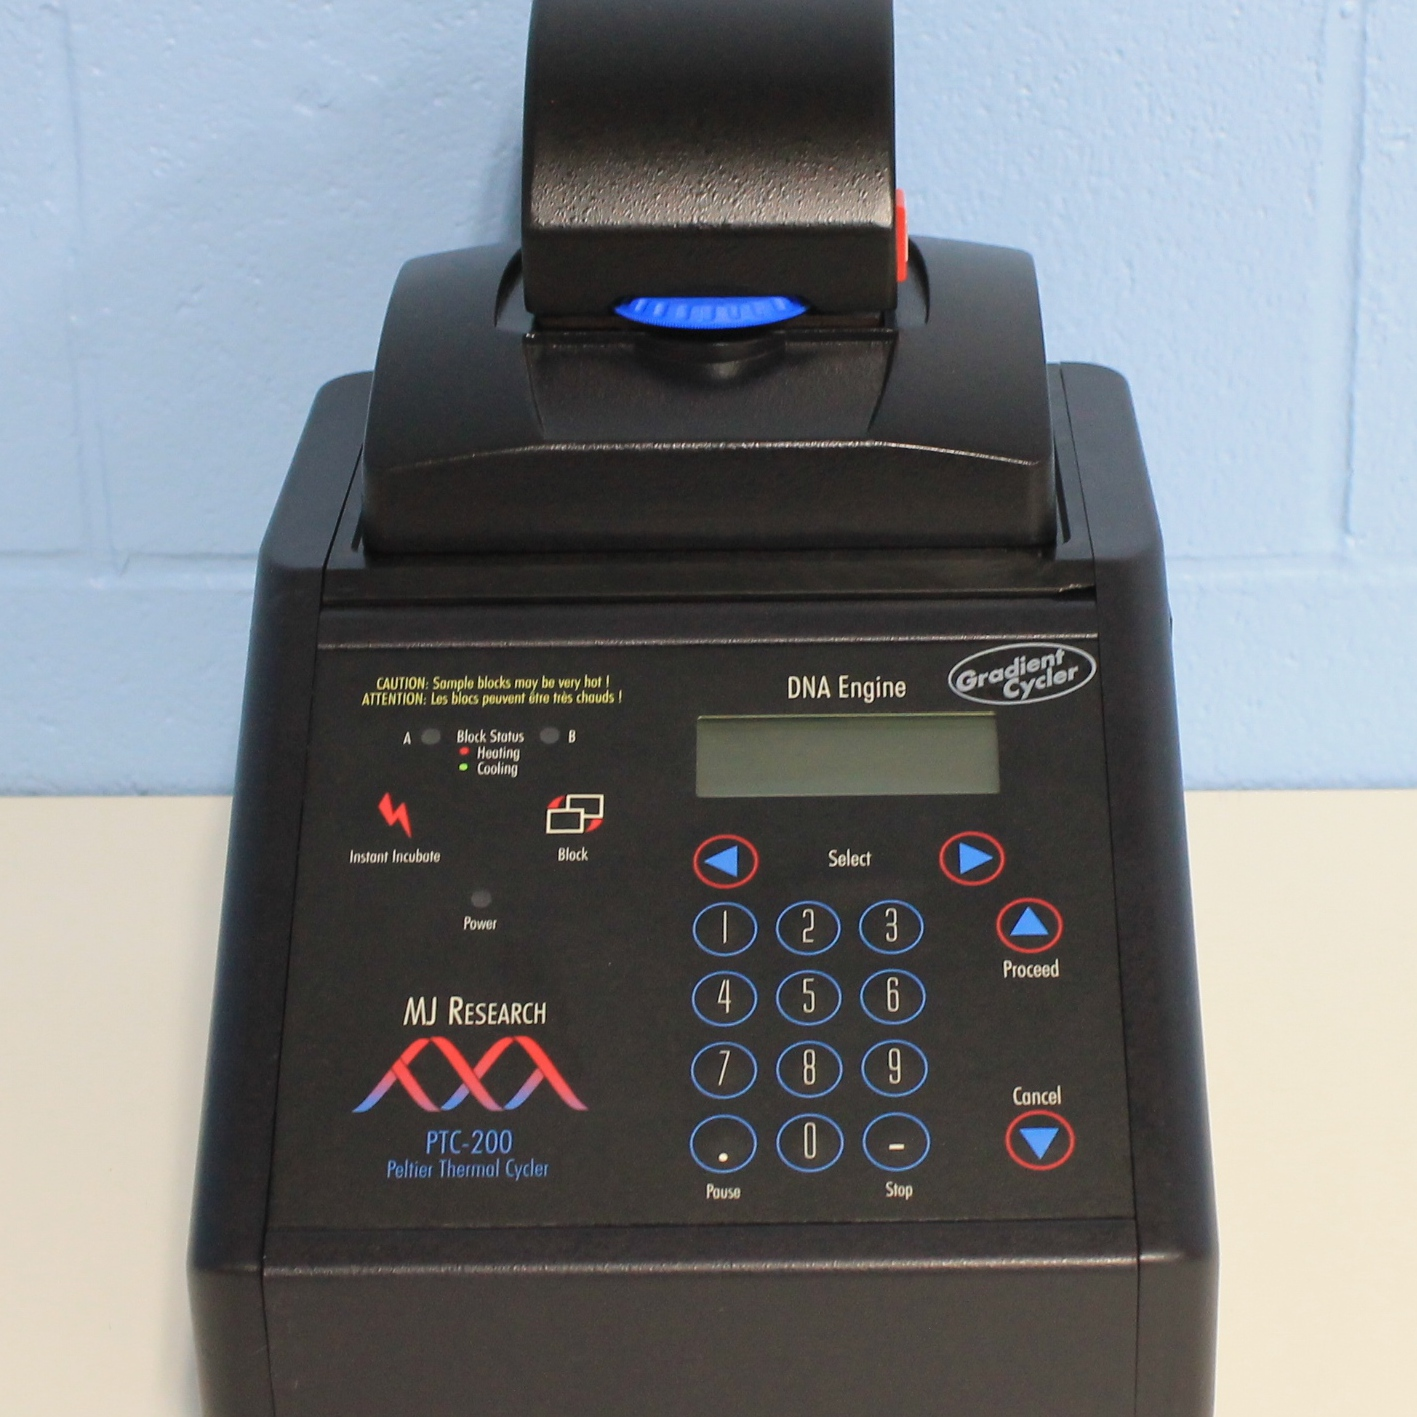 PTC-200 Gradient Peltier Thermal Cycler with Power Bonnet Lid Name